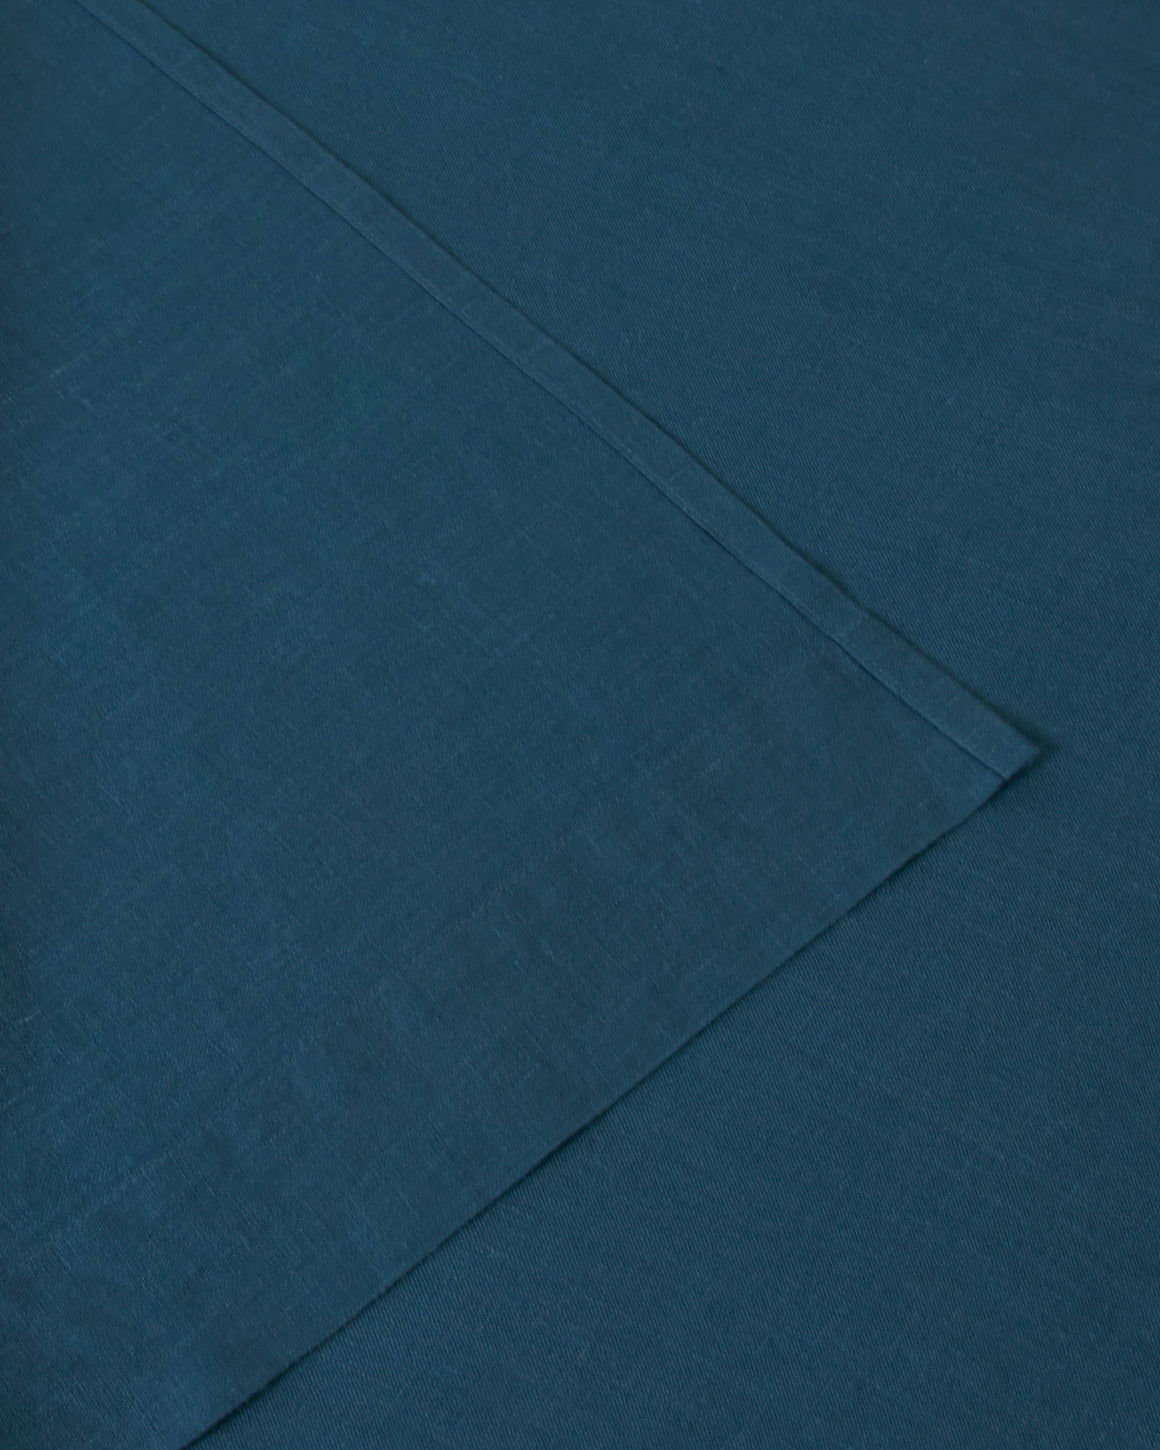 Linen sheets collection set in a dark blue adriatic indigo color